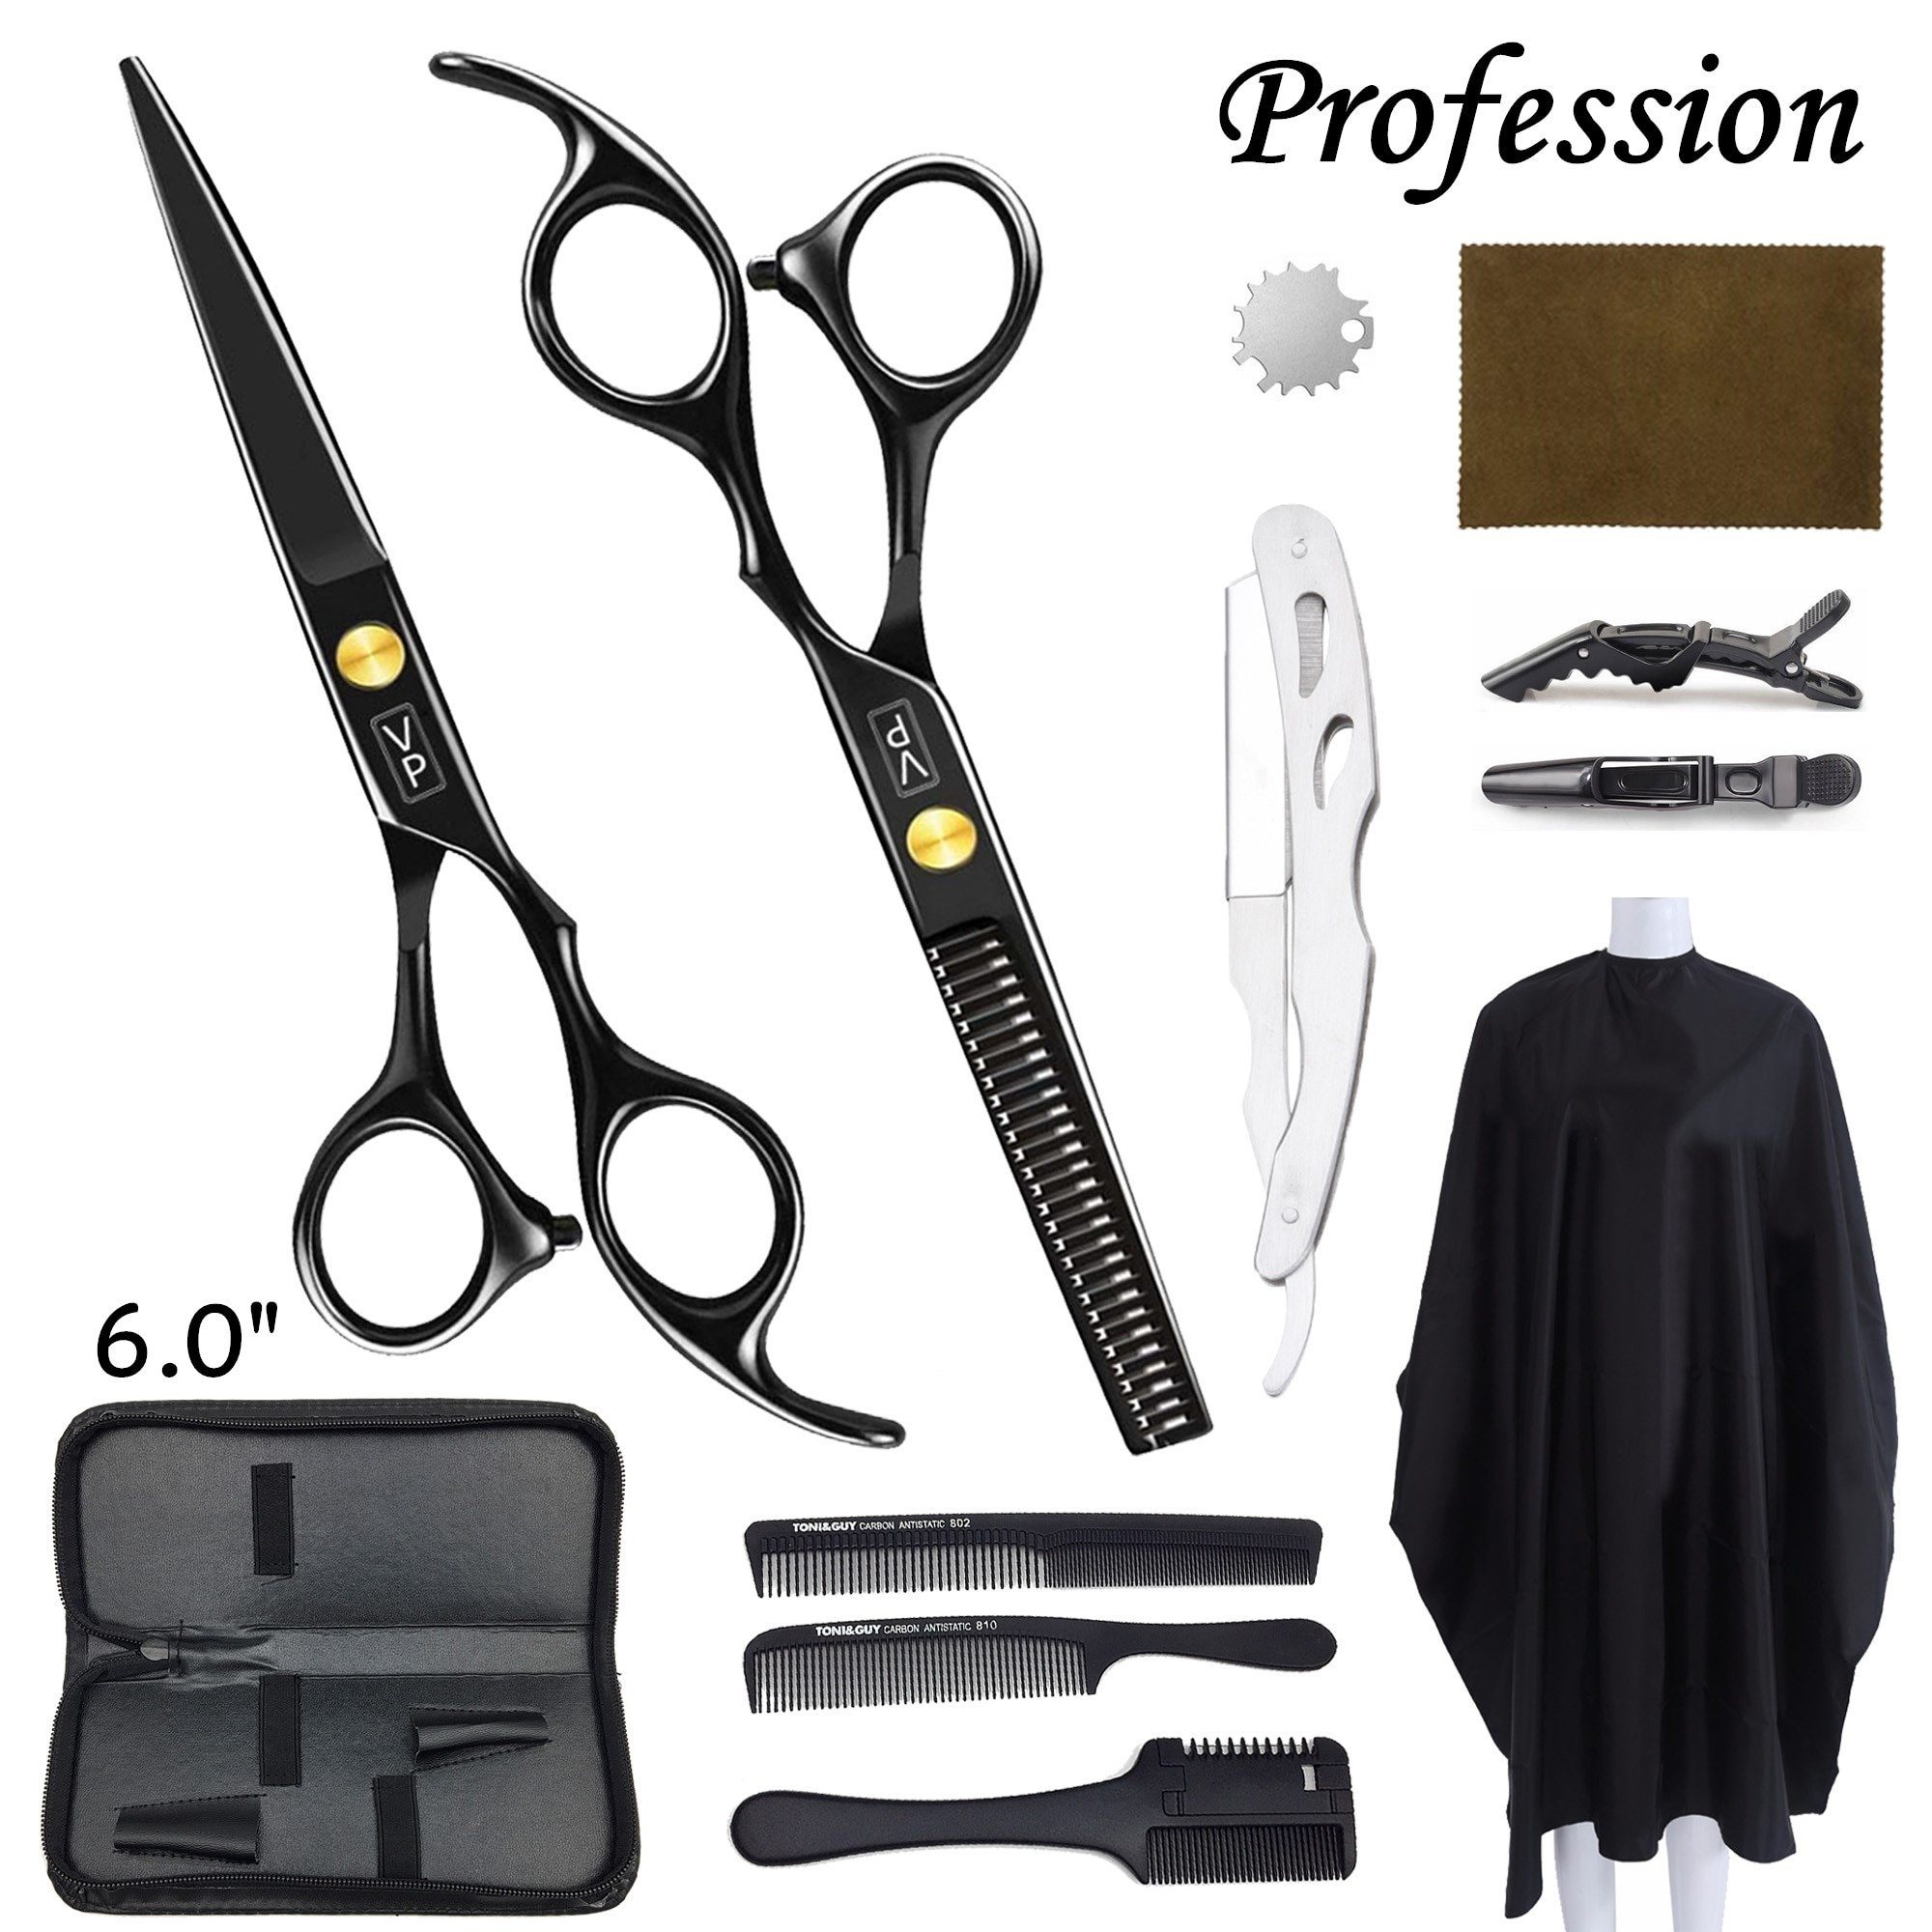 Professional Hairdressing Scissors Kit Hair Scissors Barbershop Barber Scissors Tail Comb Hair Cloak Hair Cut Comb Styling Tool